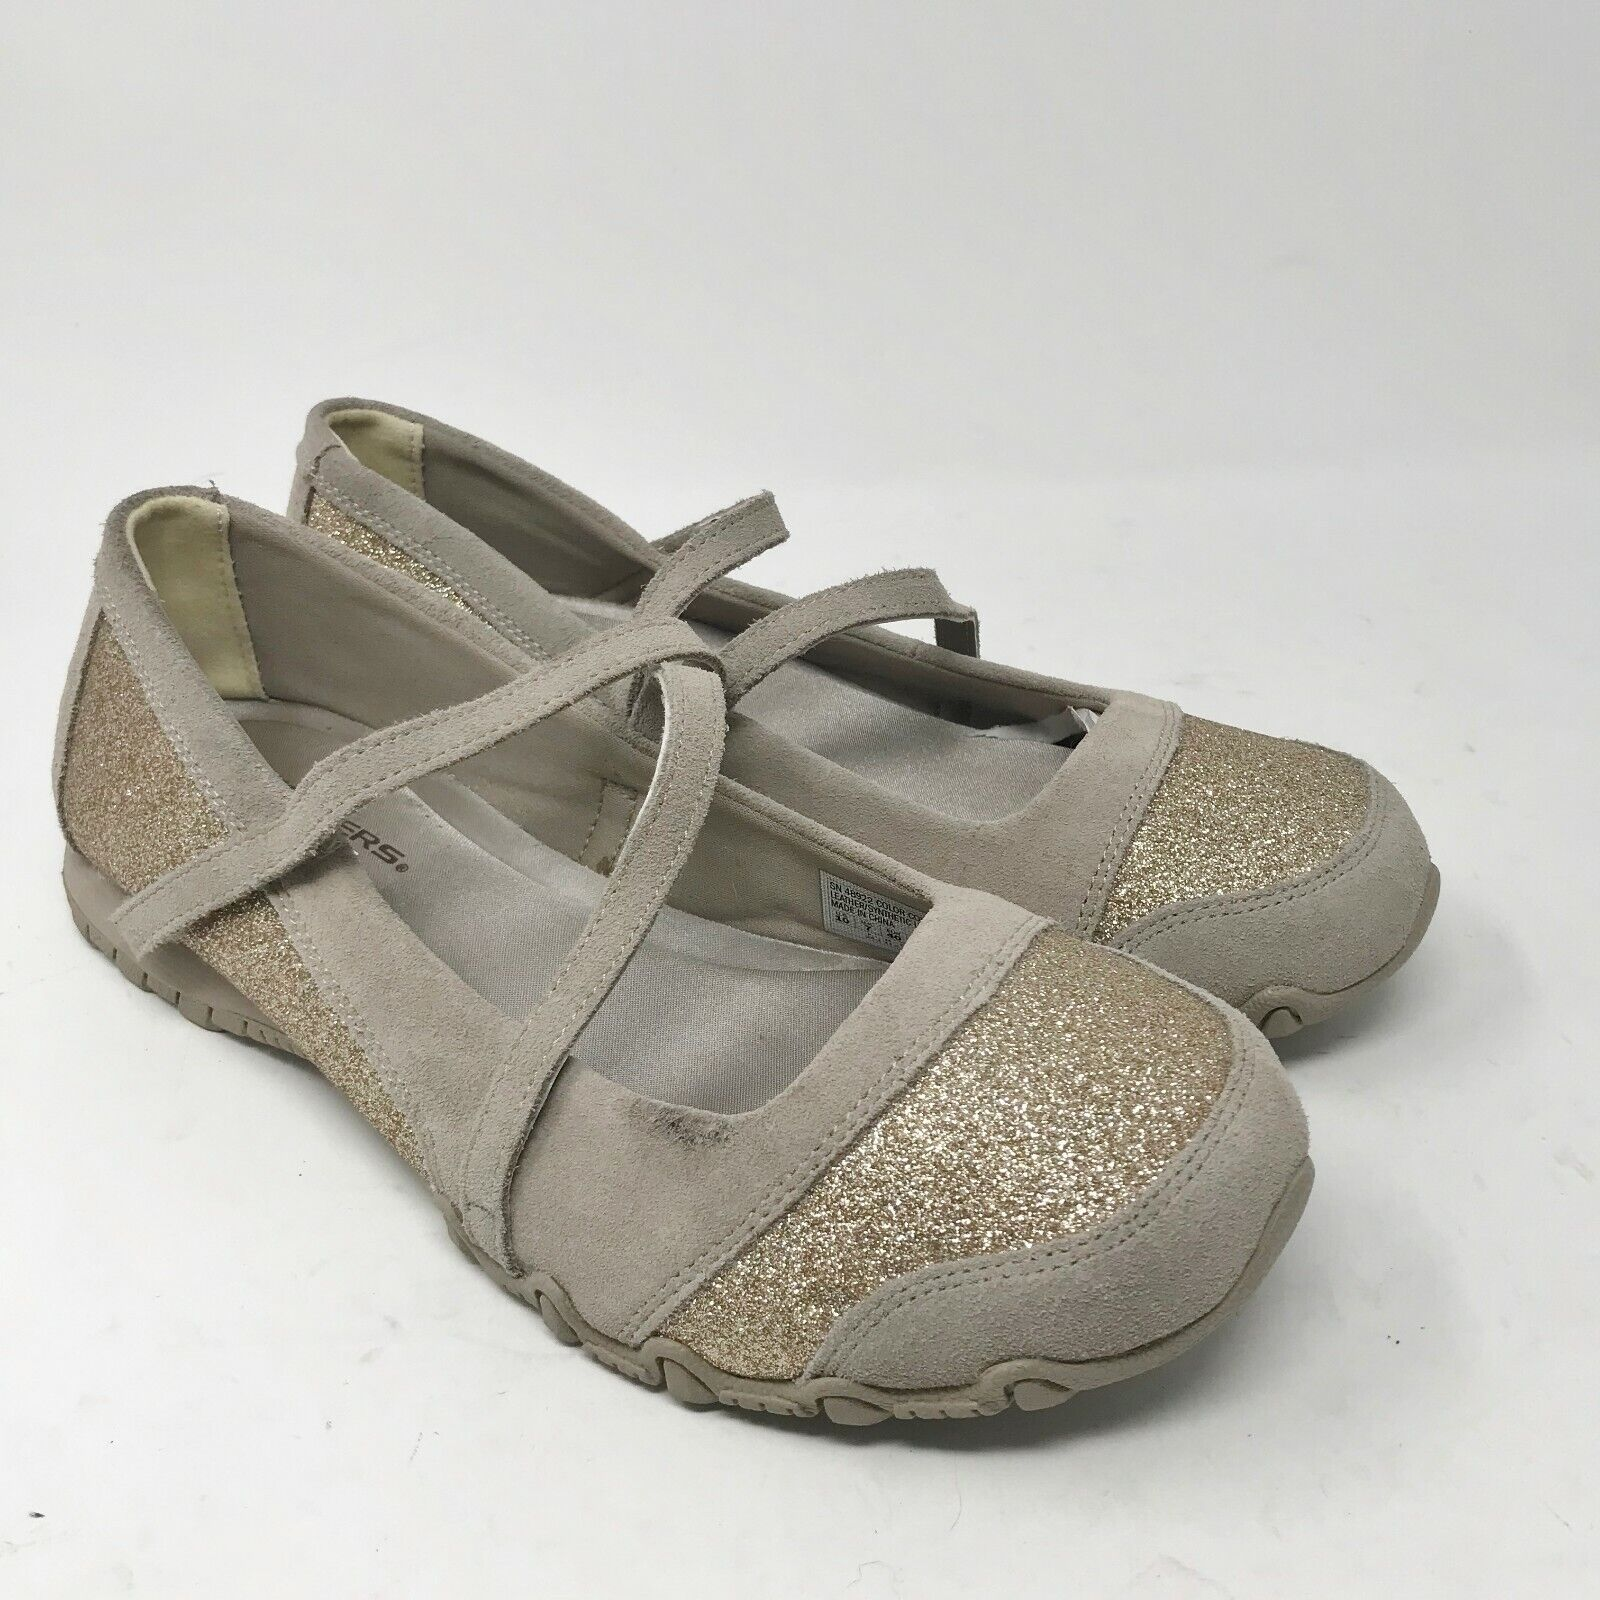 Sketchers Woman's Shoes sz 10 Suede Leather Gold Flats Relaxed Fit Memory Foam